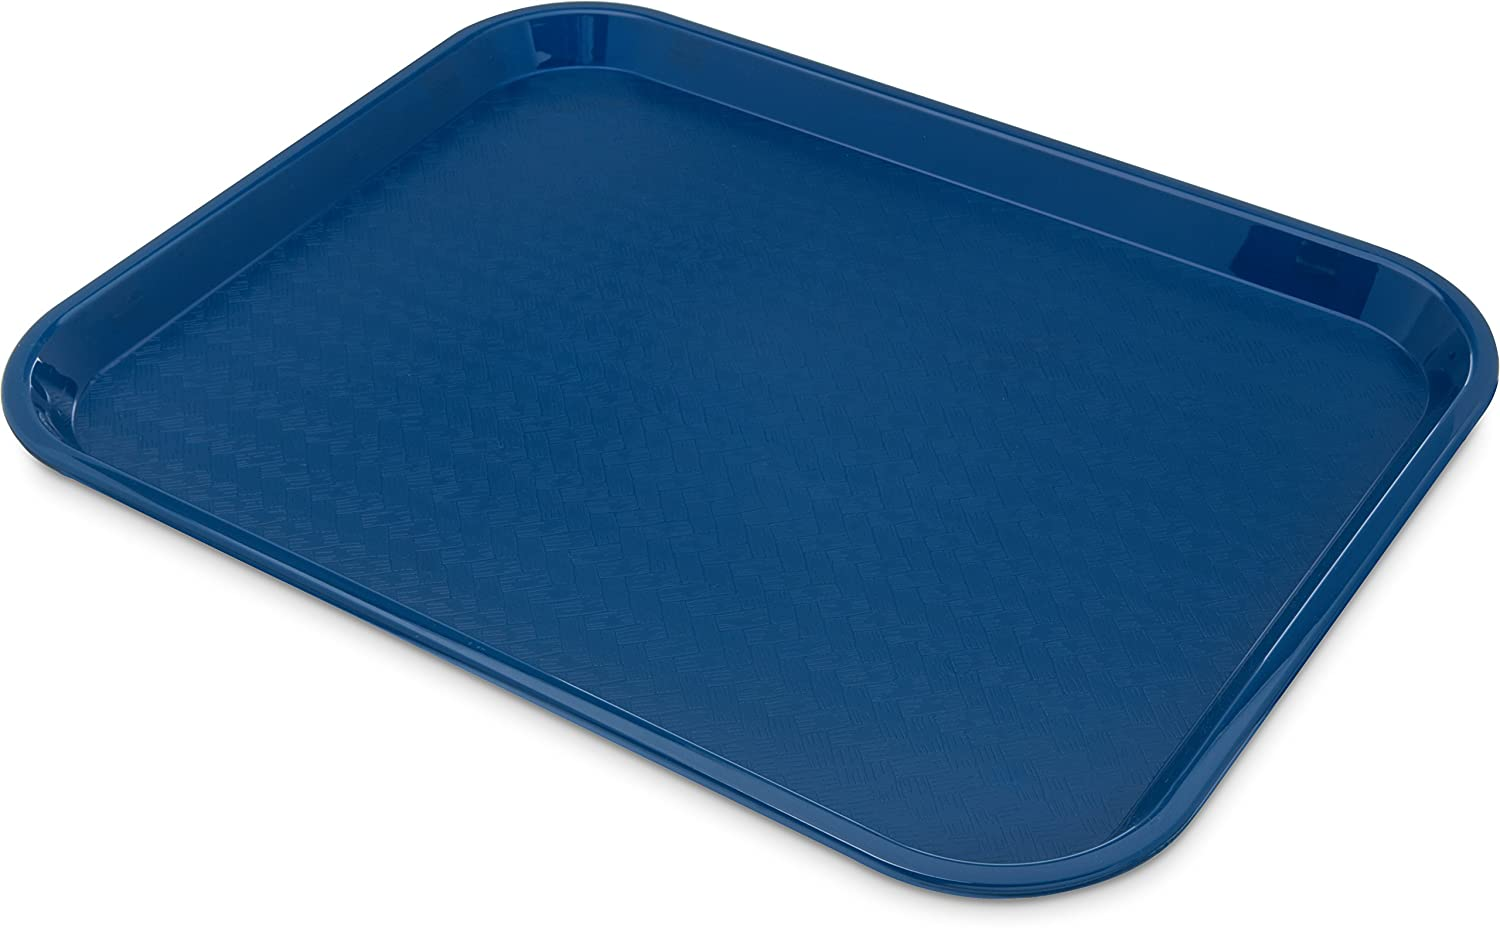 Carlisle CT141814 Café Standard Cafeteria / Fast Food Tray, 14